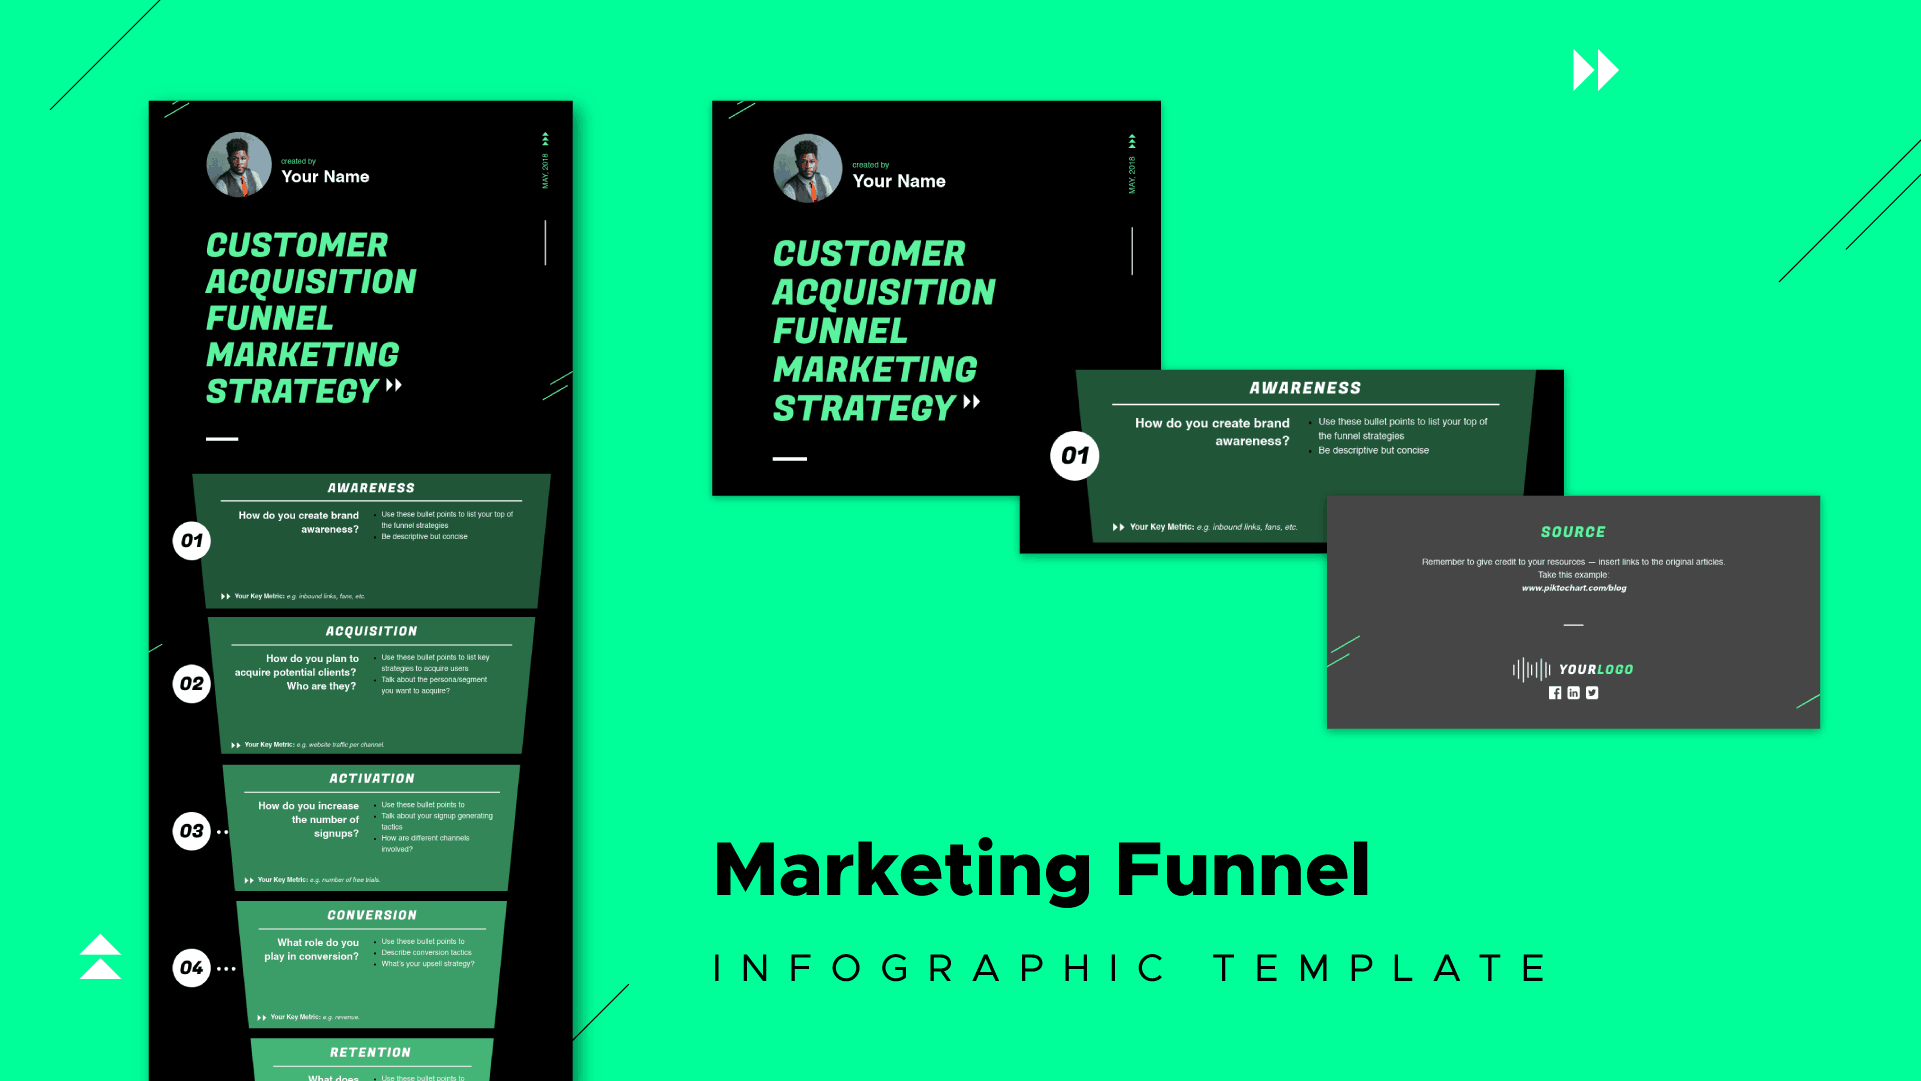 templates-visual_infographic_1149-6373333